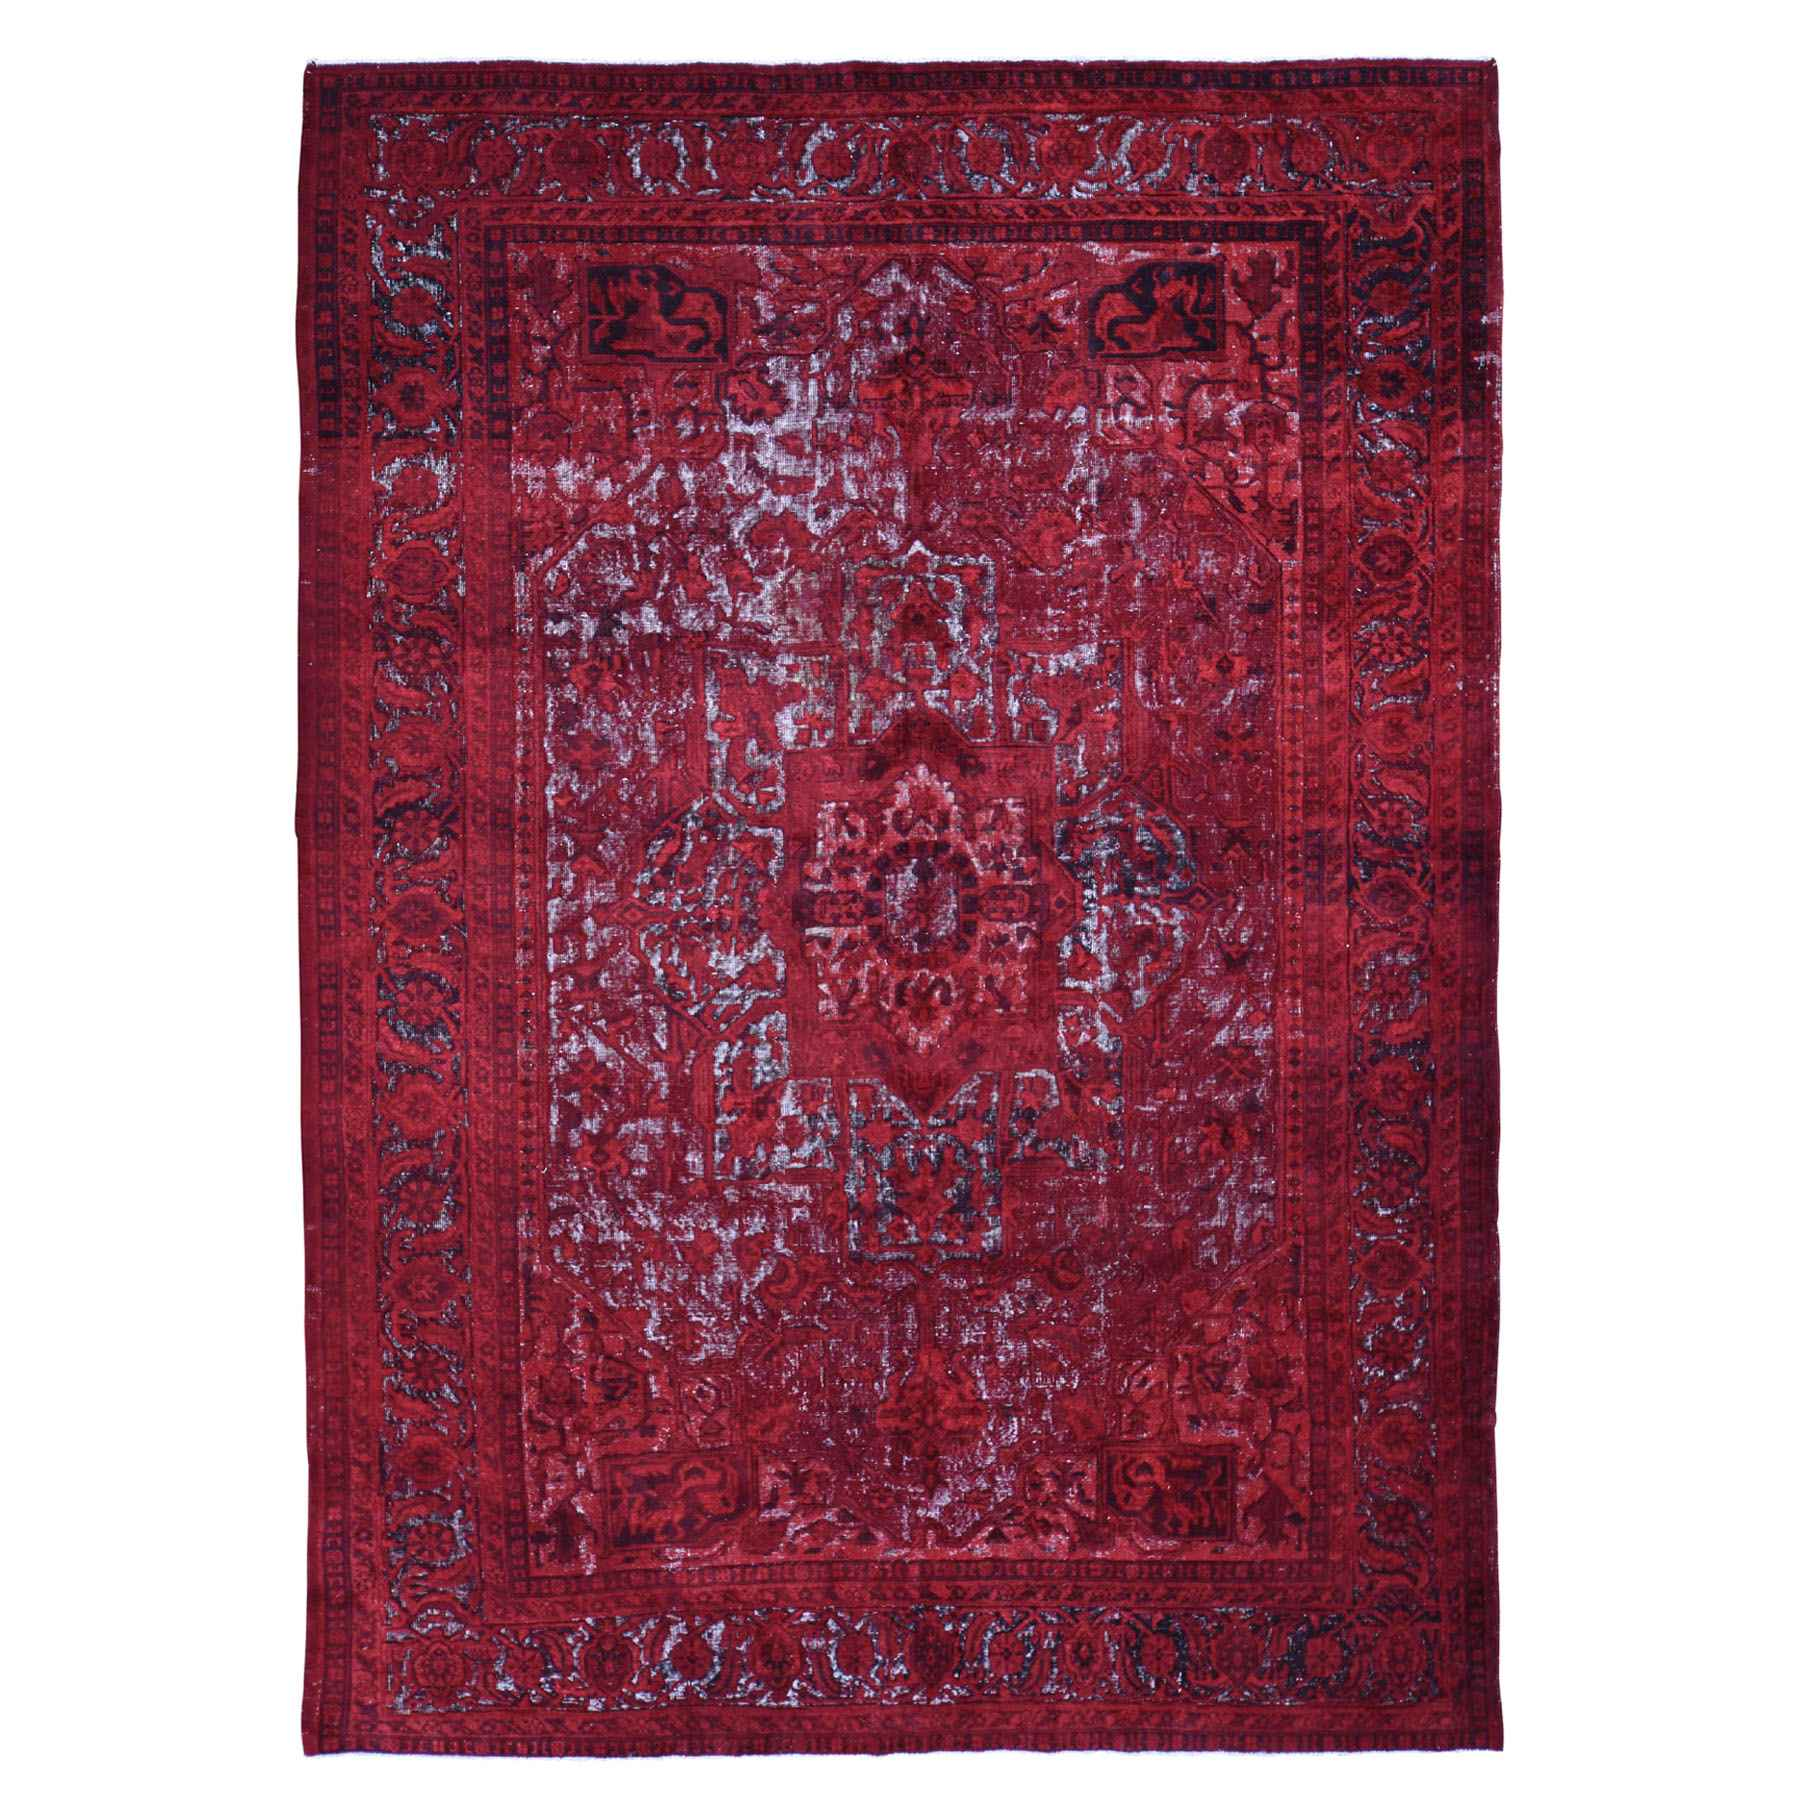 Overdyed-Vintage-Hand-Knotted-Rug-245155